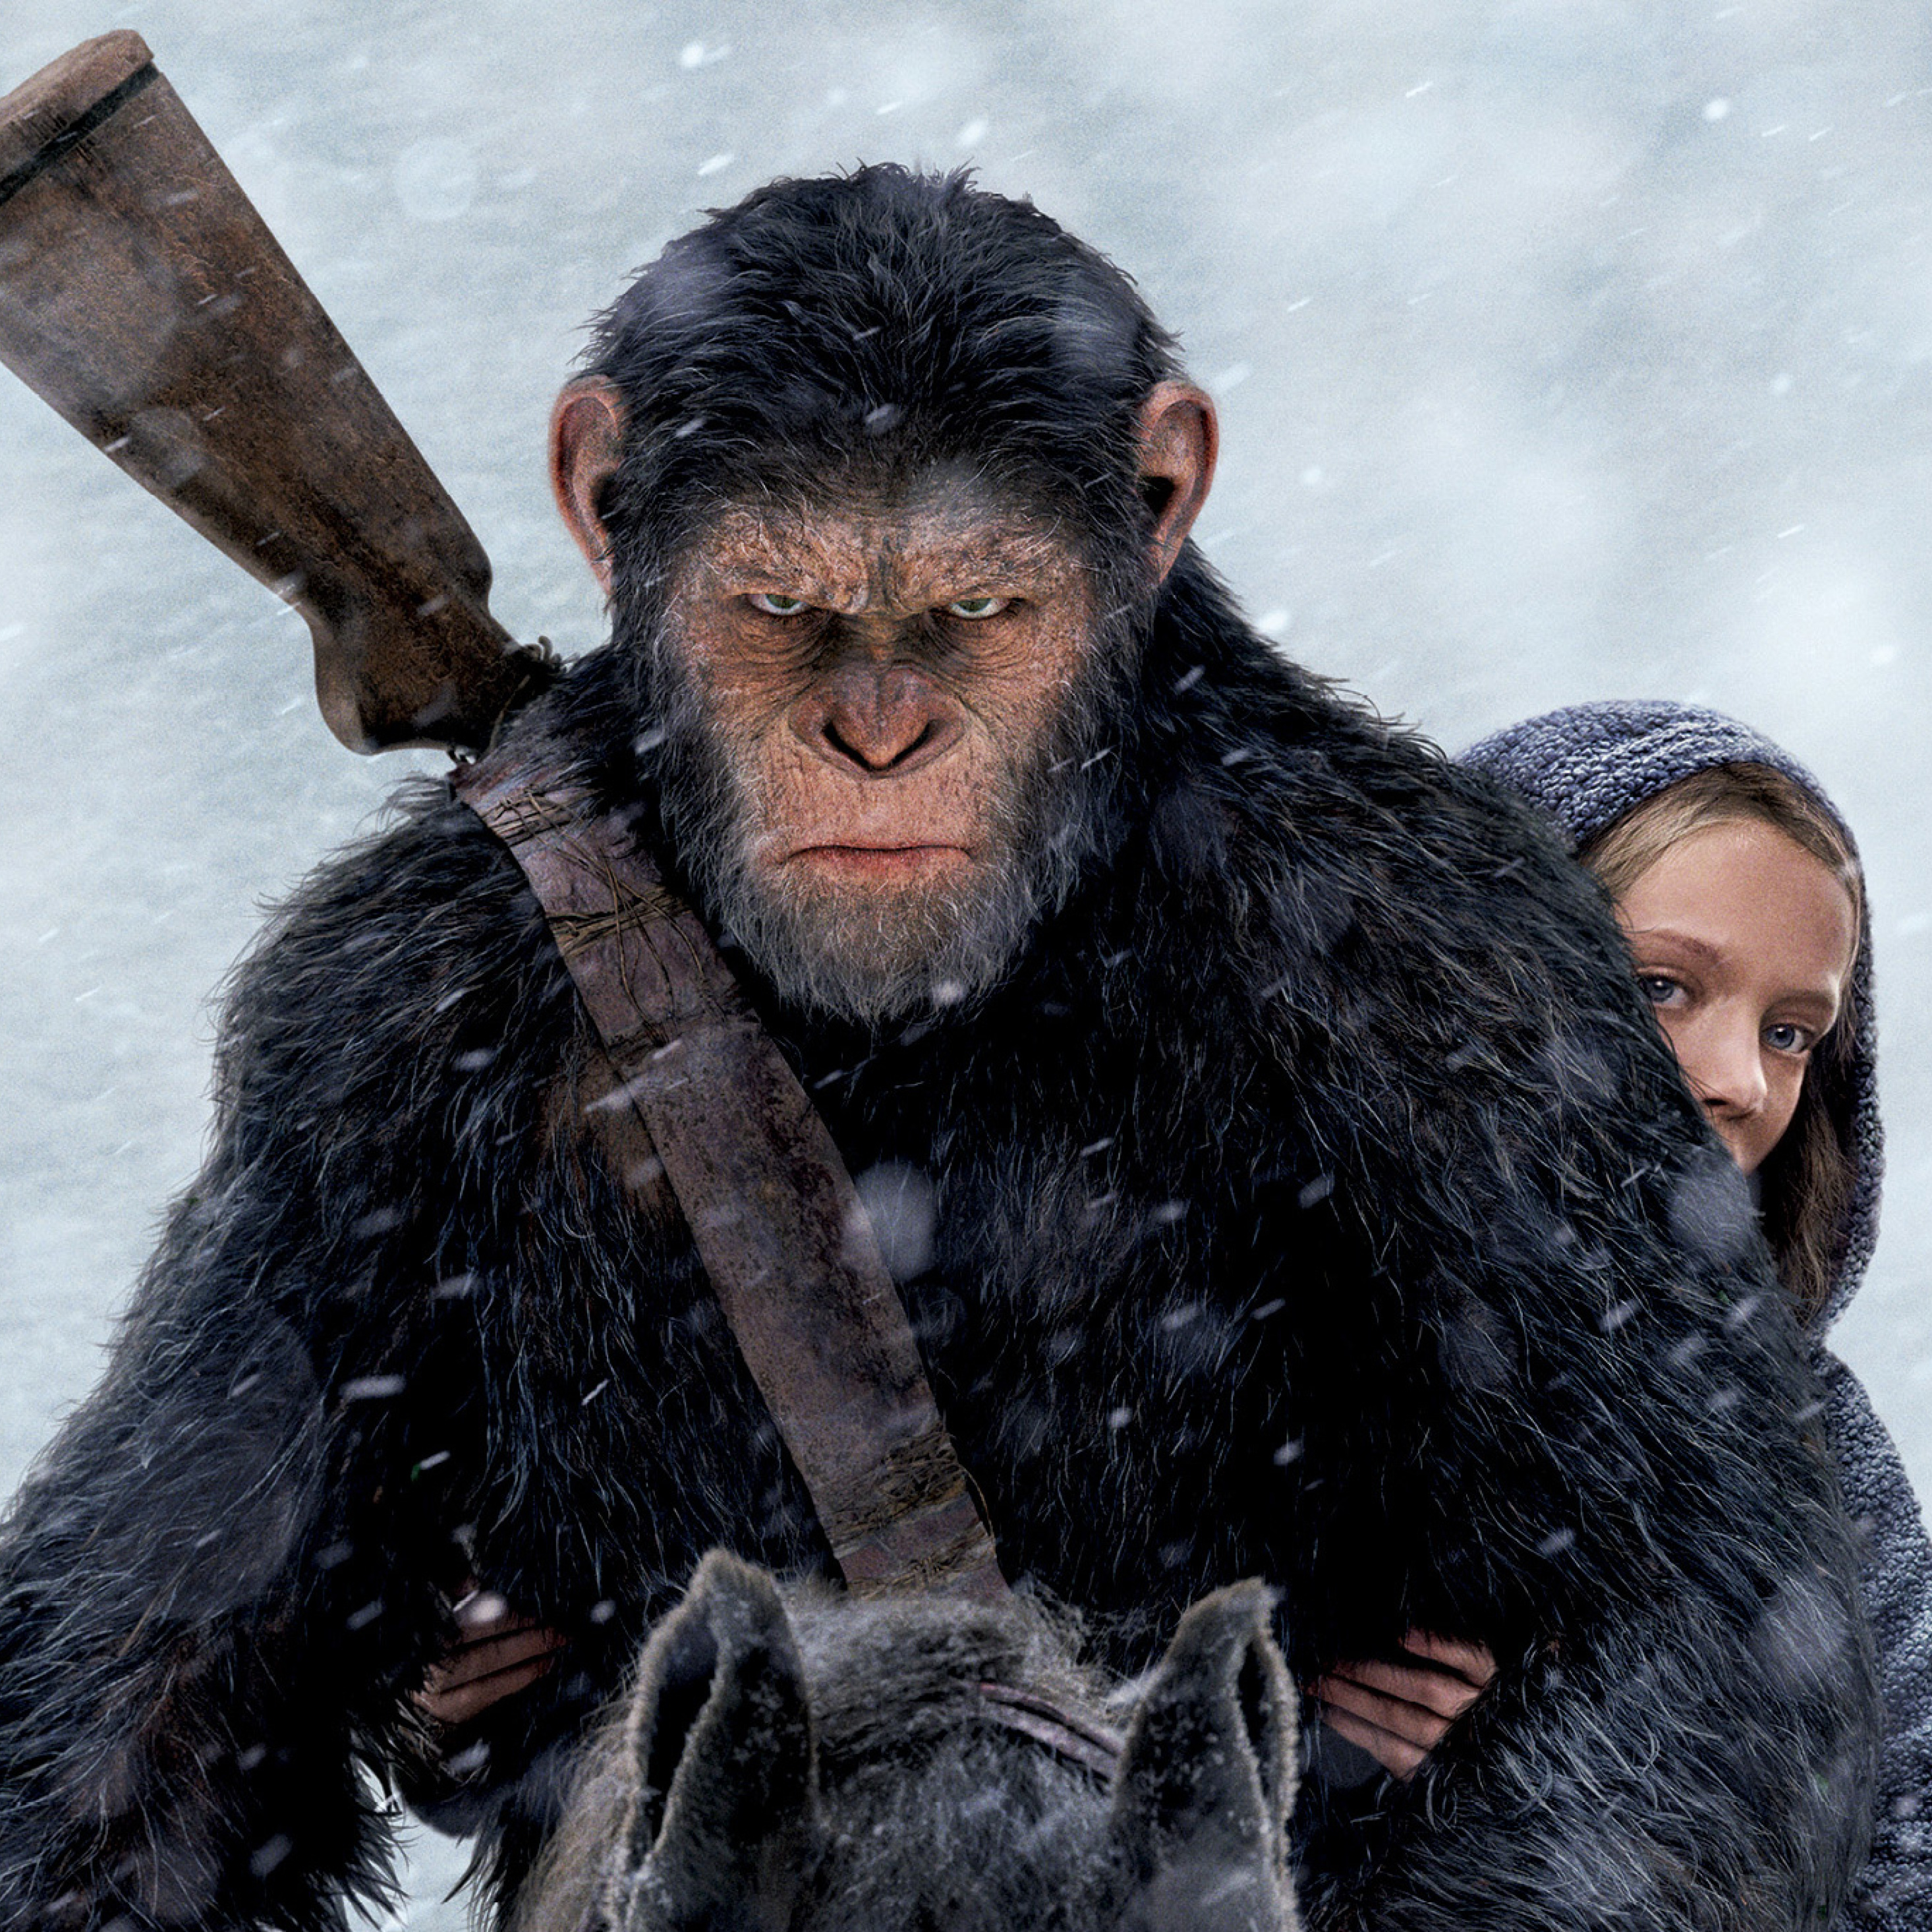 2932x2932 War For The Planet Of The Apes Movie Still Ipad Pro